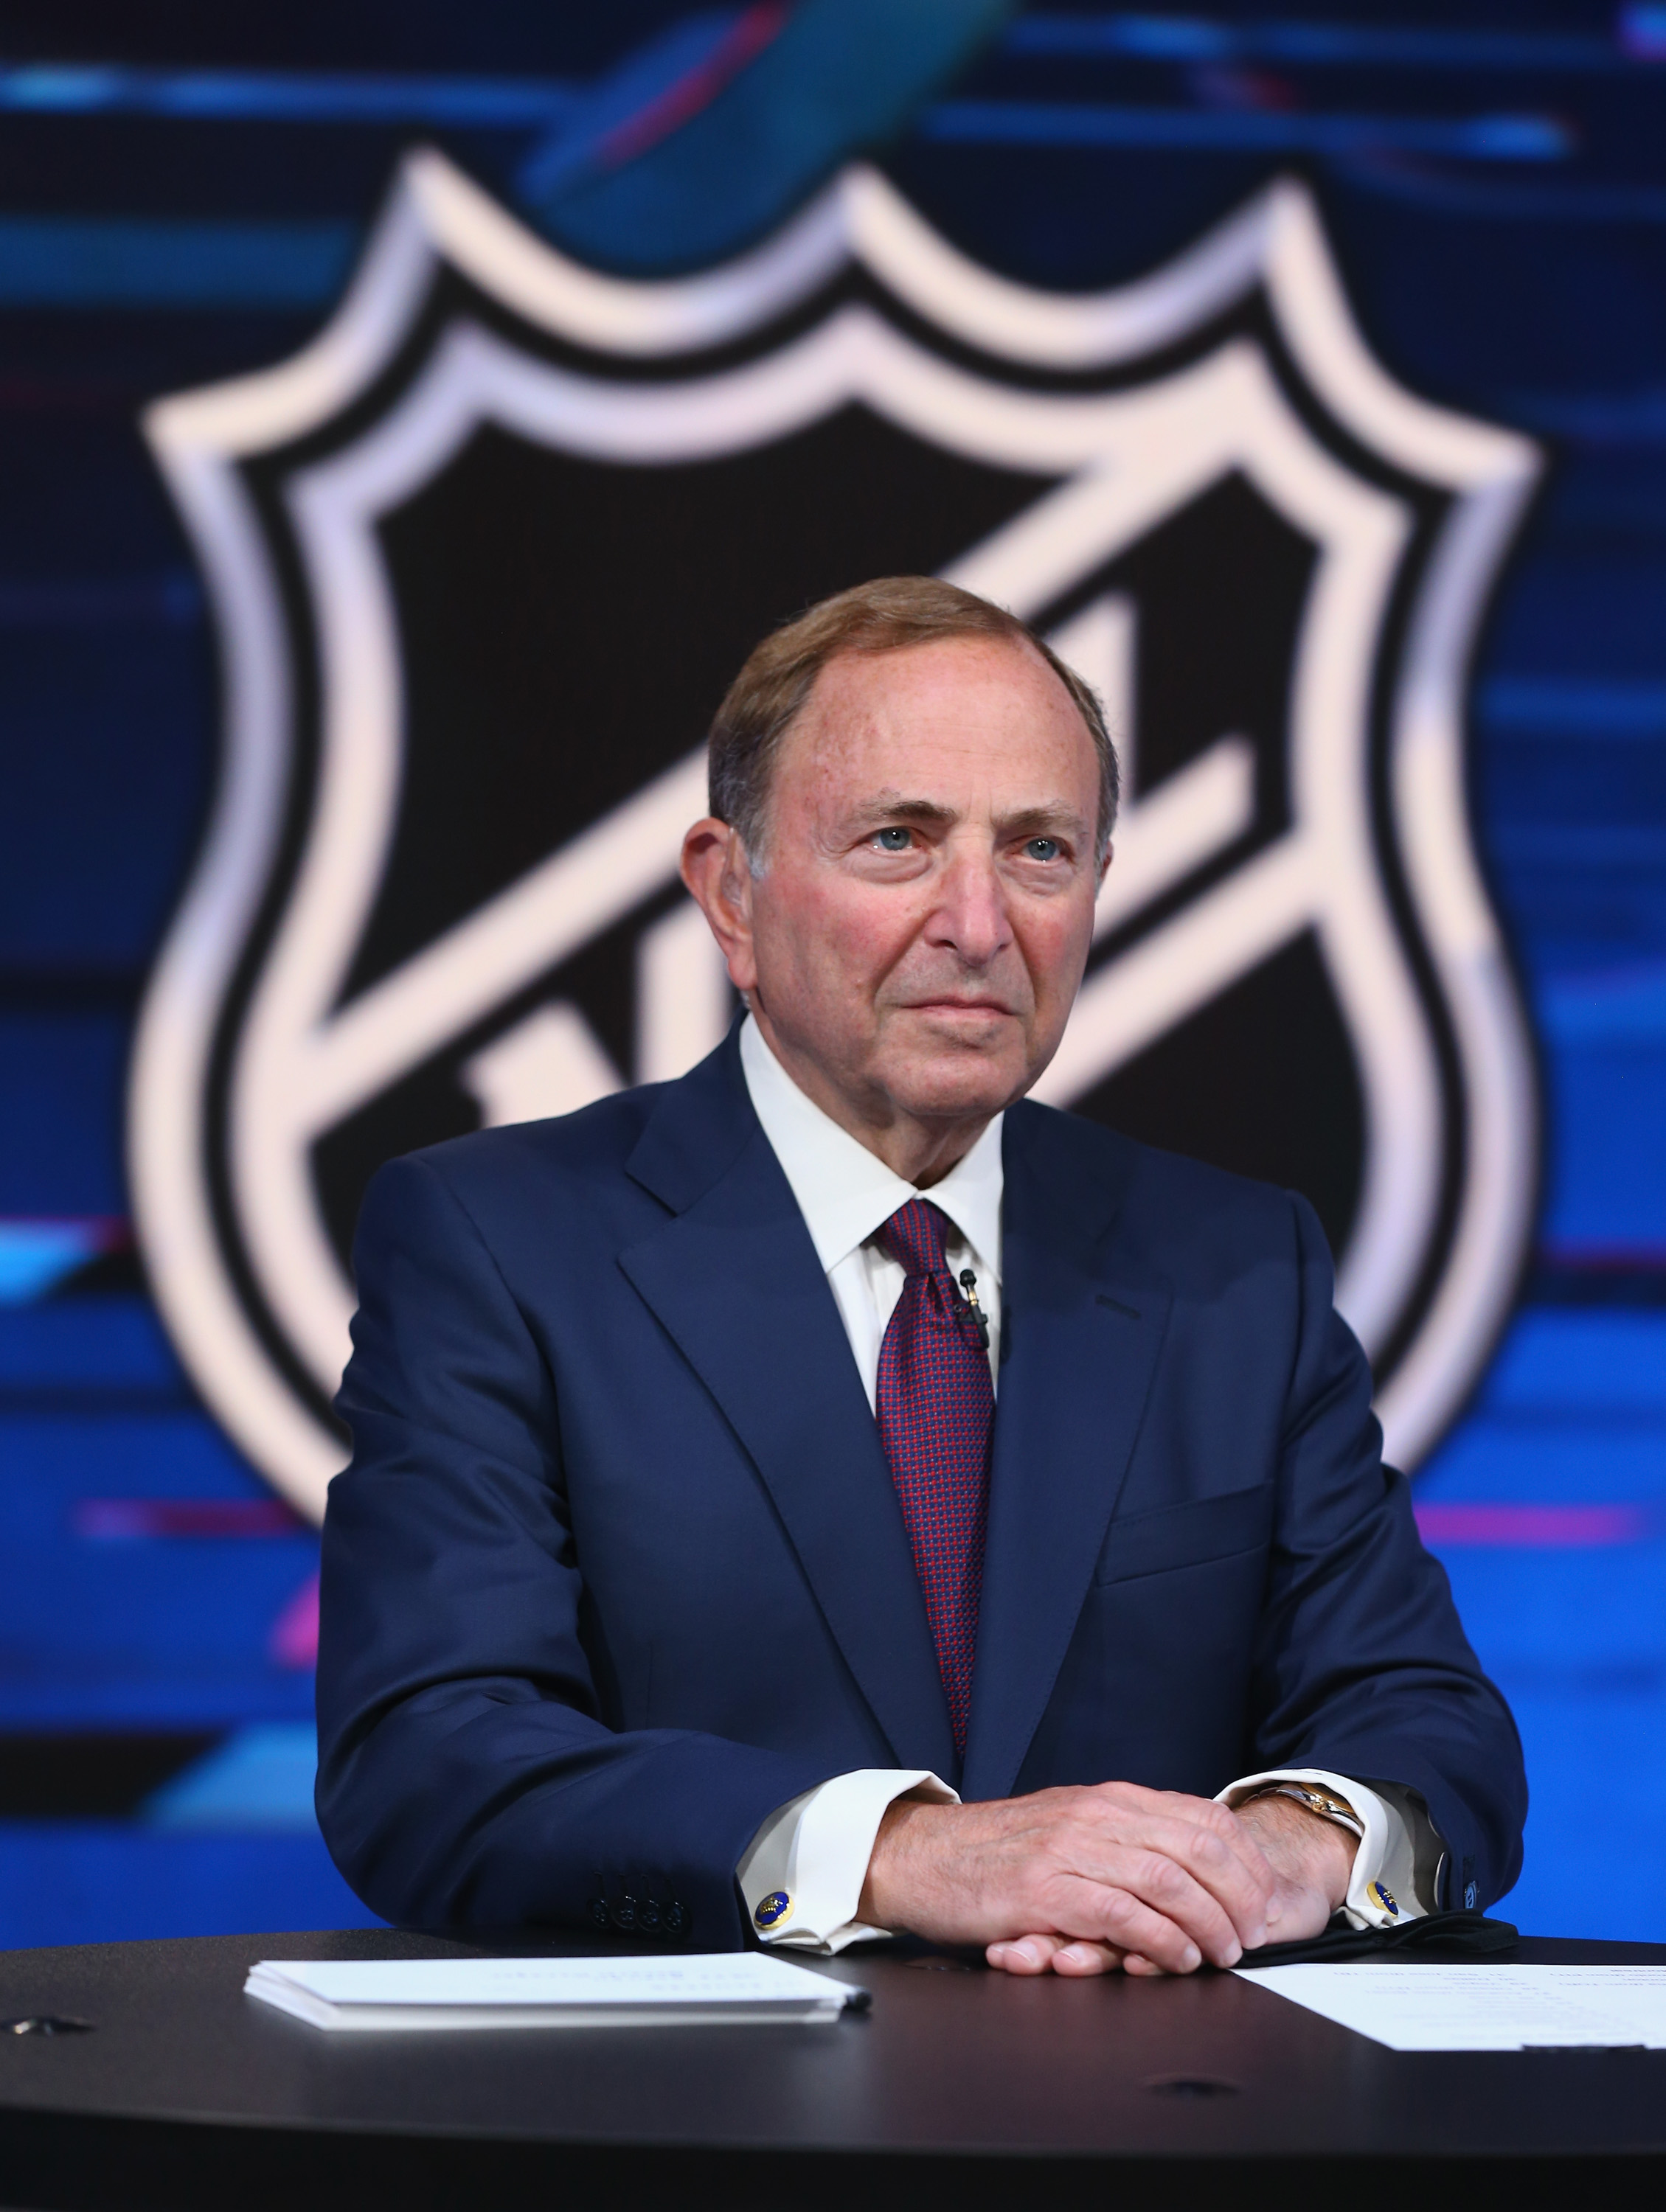 NHL commissioner Gary Bettman prepares for the first round of the 2020 National Hockey League Draft at the NHL Network Studio on October 06, 2020 in Secaucus, New Jersey.